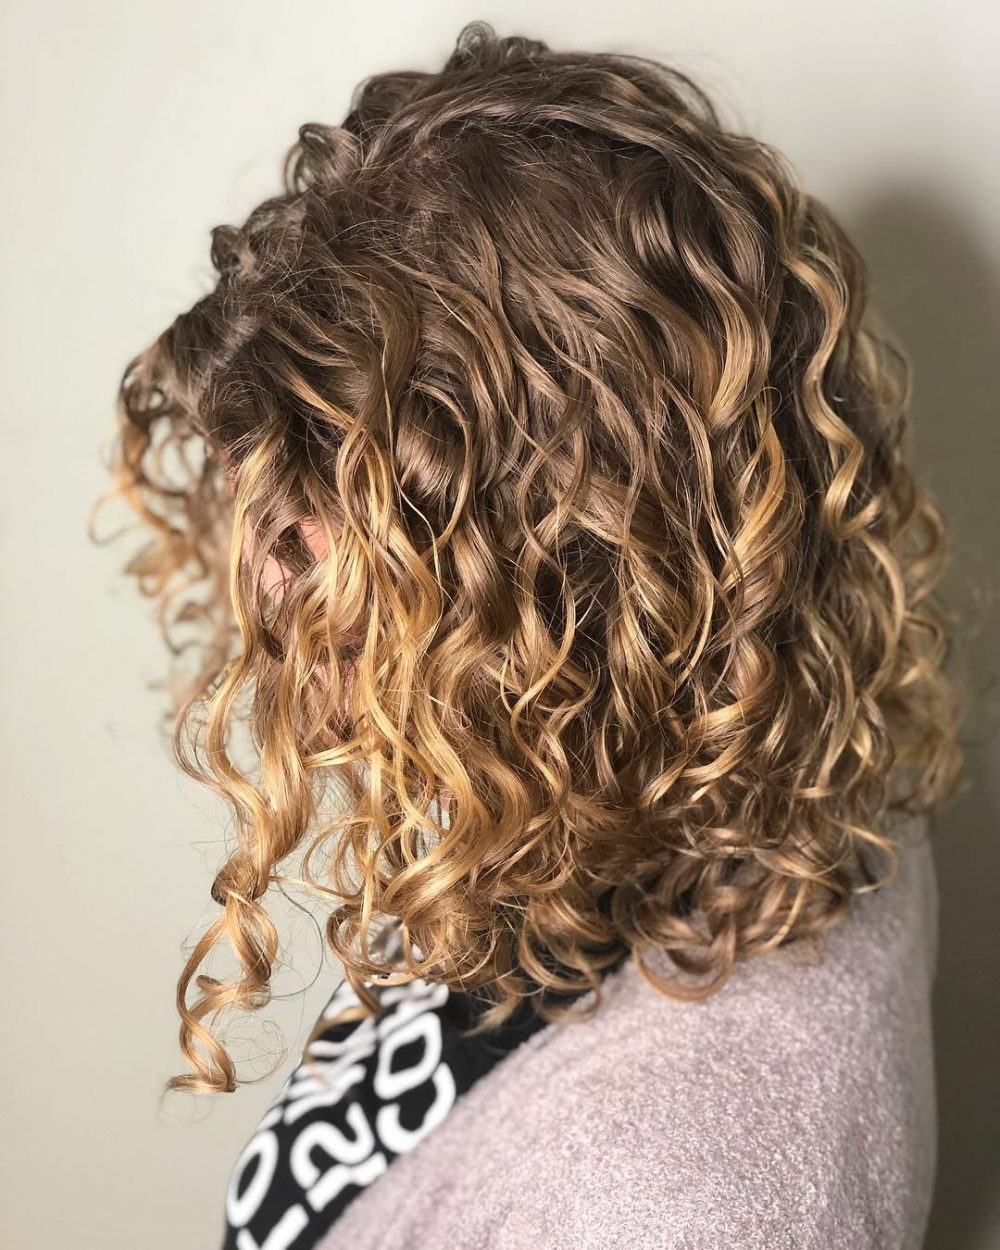 30 Gorgeous Medium Length Curly Hairstyles For Women In 2018 Within Simple Short Hairstyles With Scrunched Curls (View 11 of 25)